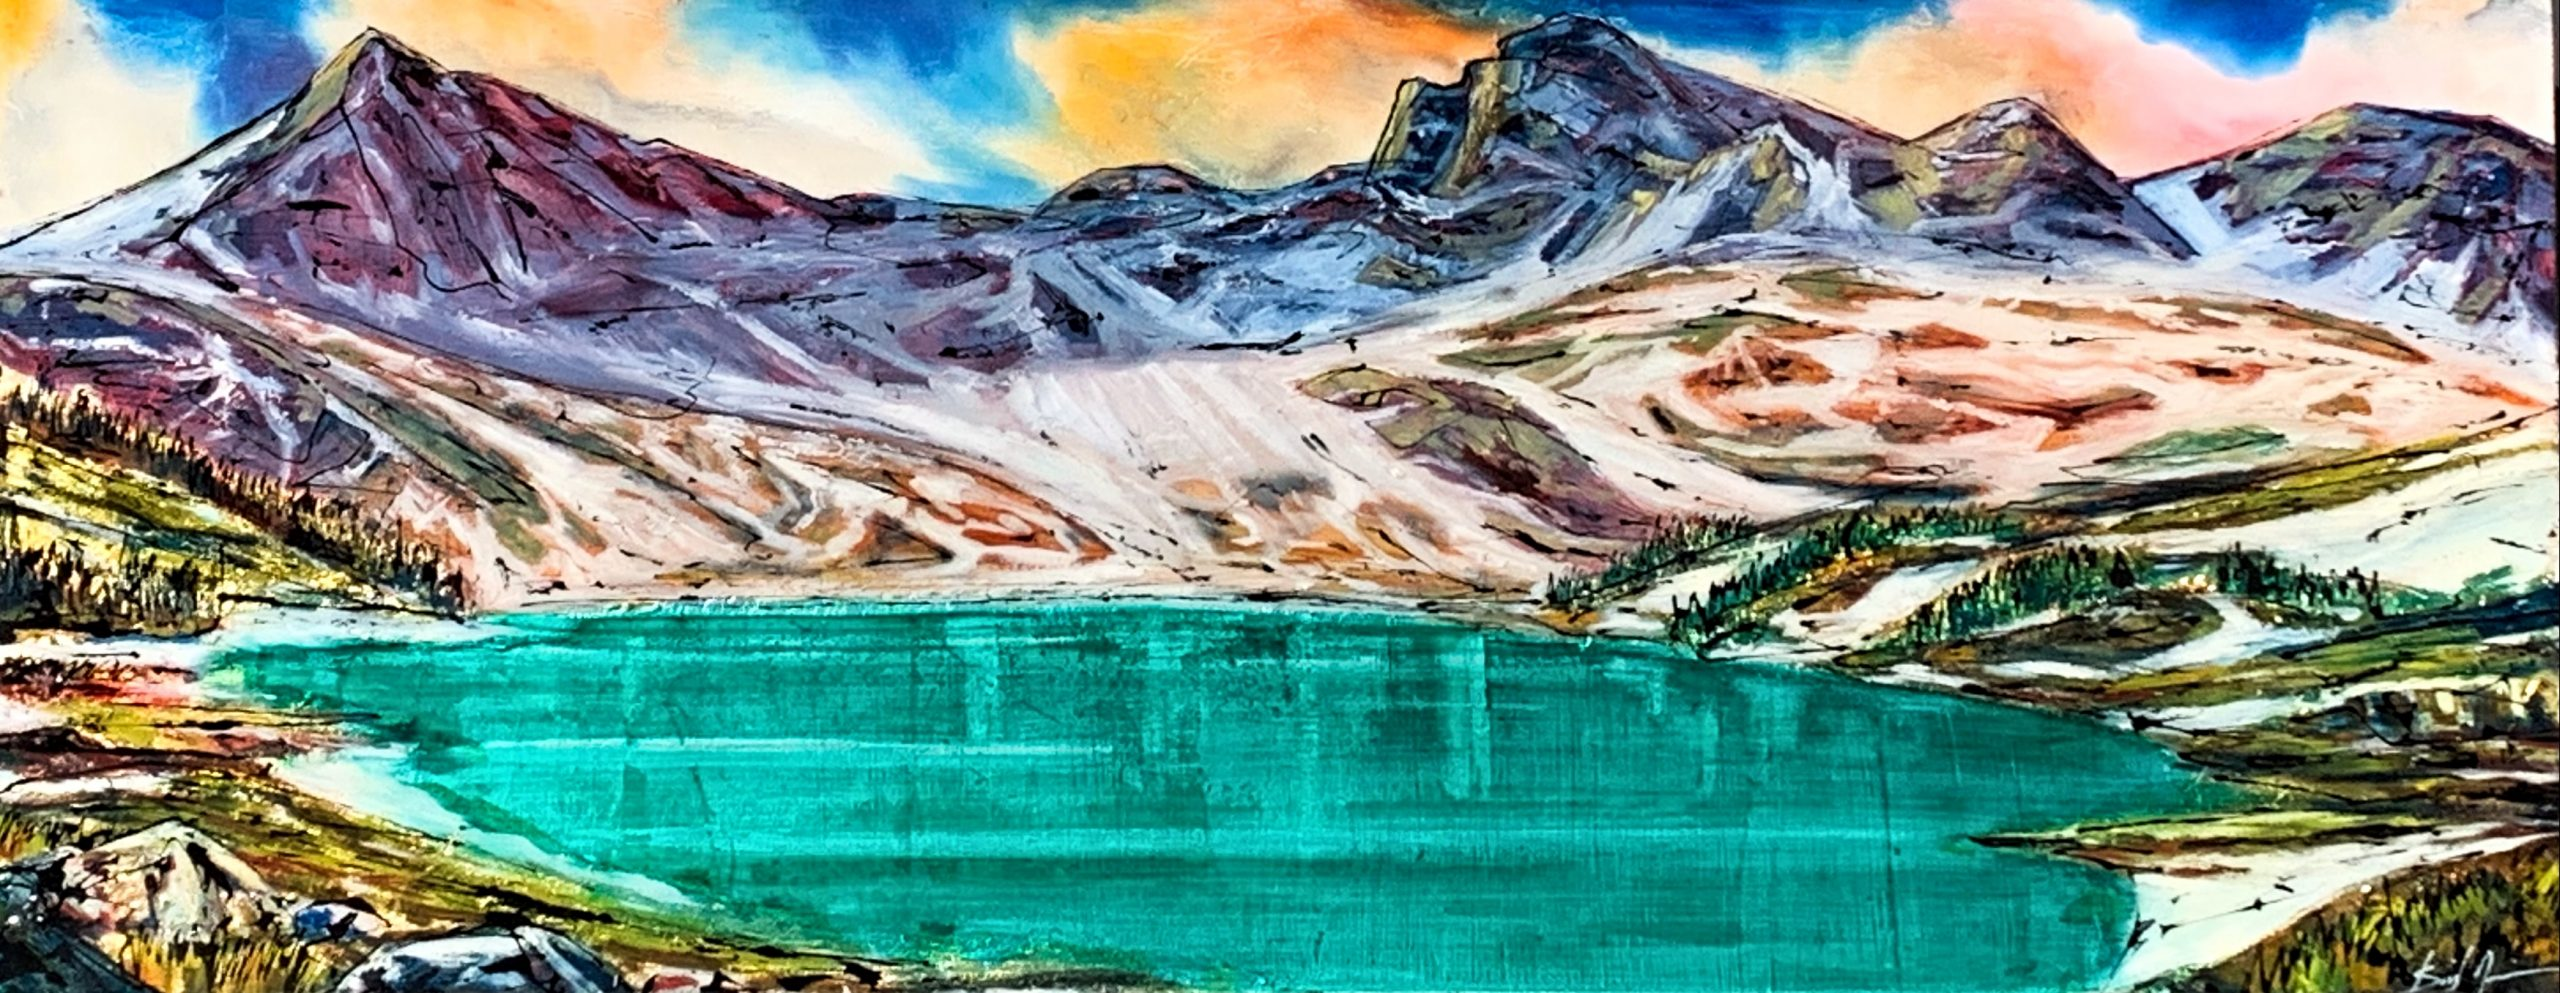 A Hike Up, mixed media landscape painting by David Zimmerman | Effusion Art Gallery + Cast Glass Studio, Invermere BC